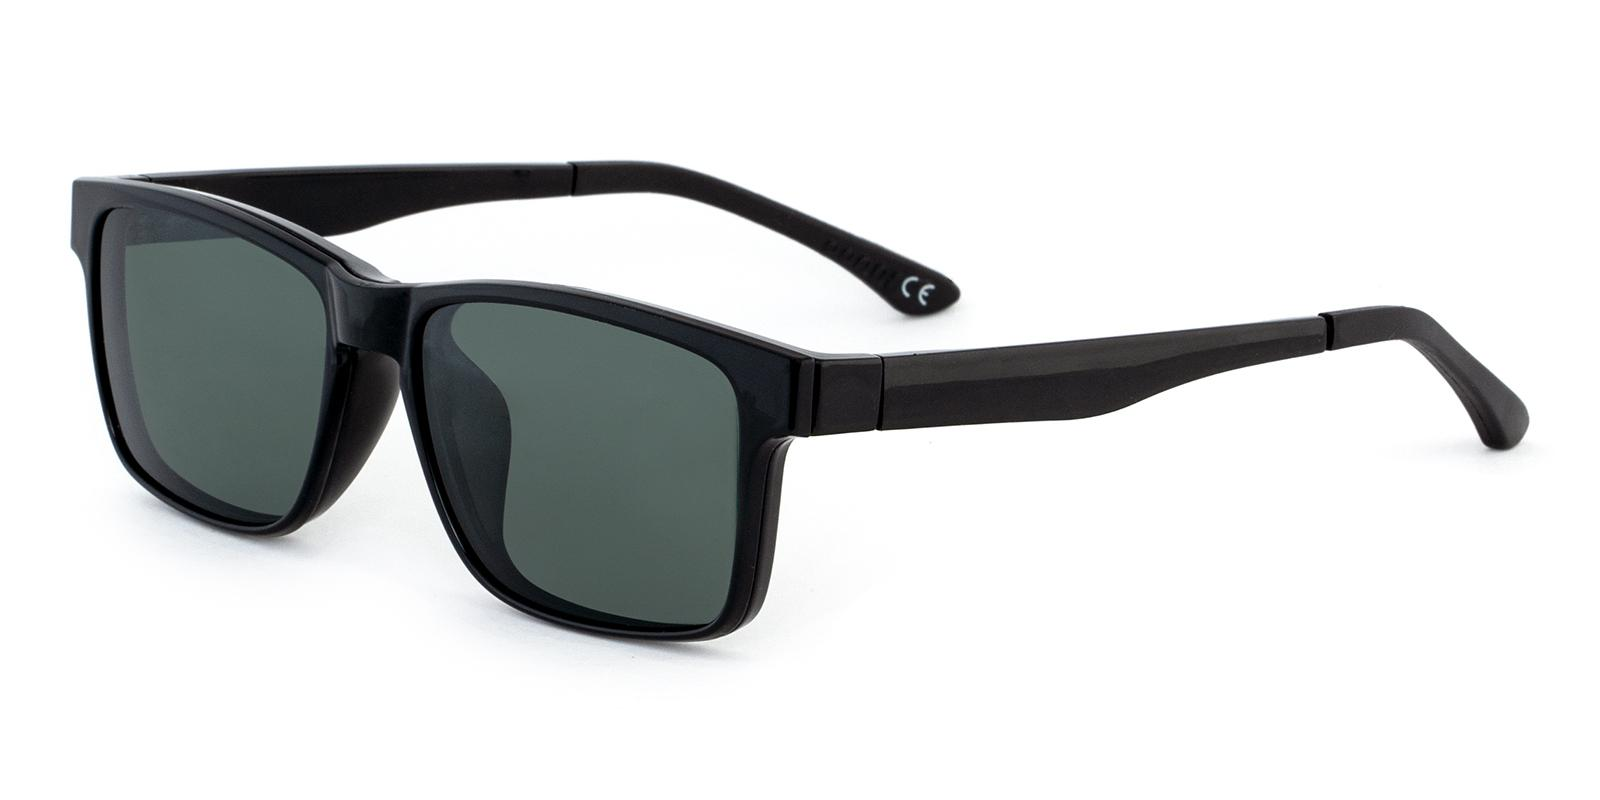 Kerberos Black Combination Sunglasses , UniversalBridgeFit Frames from ABBE Glasses